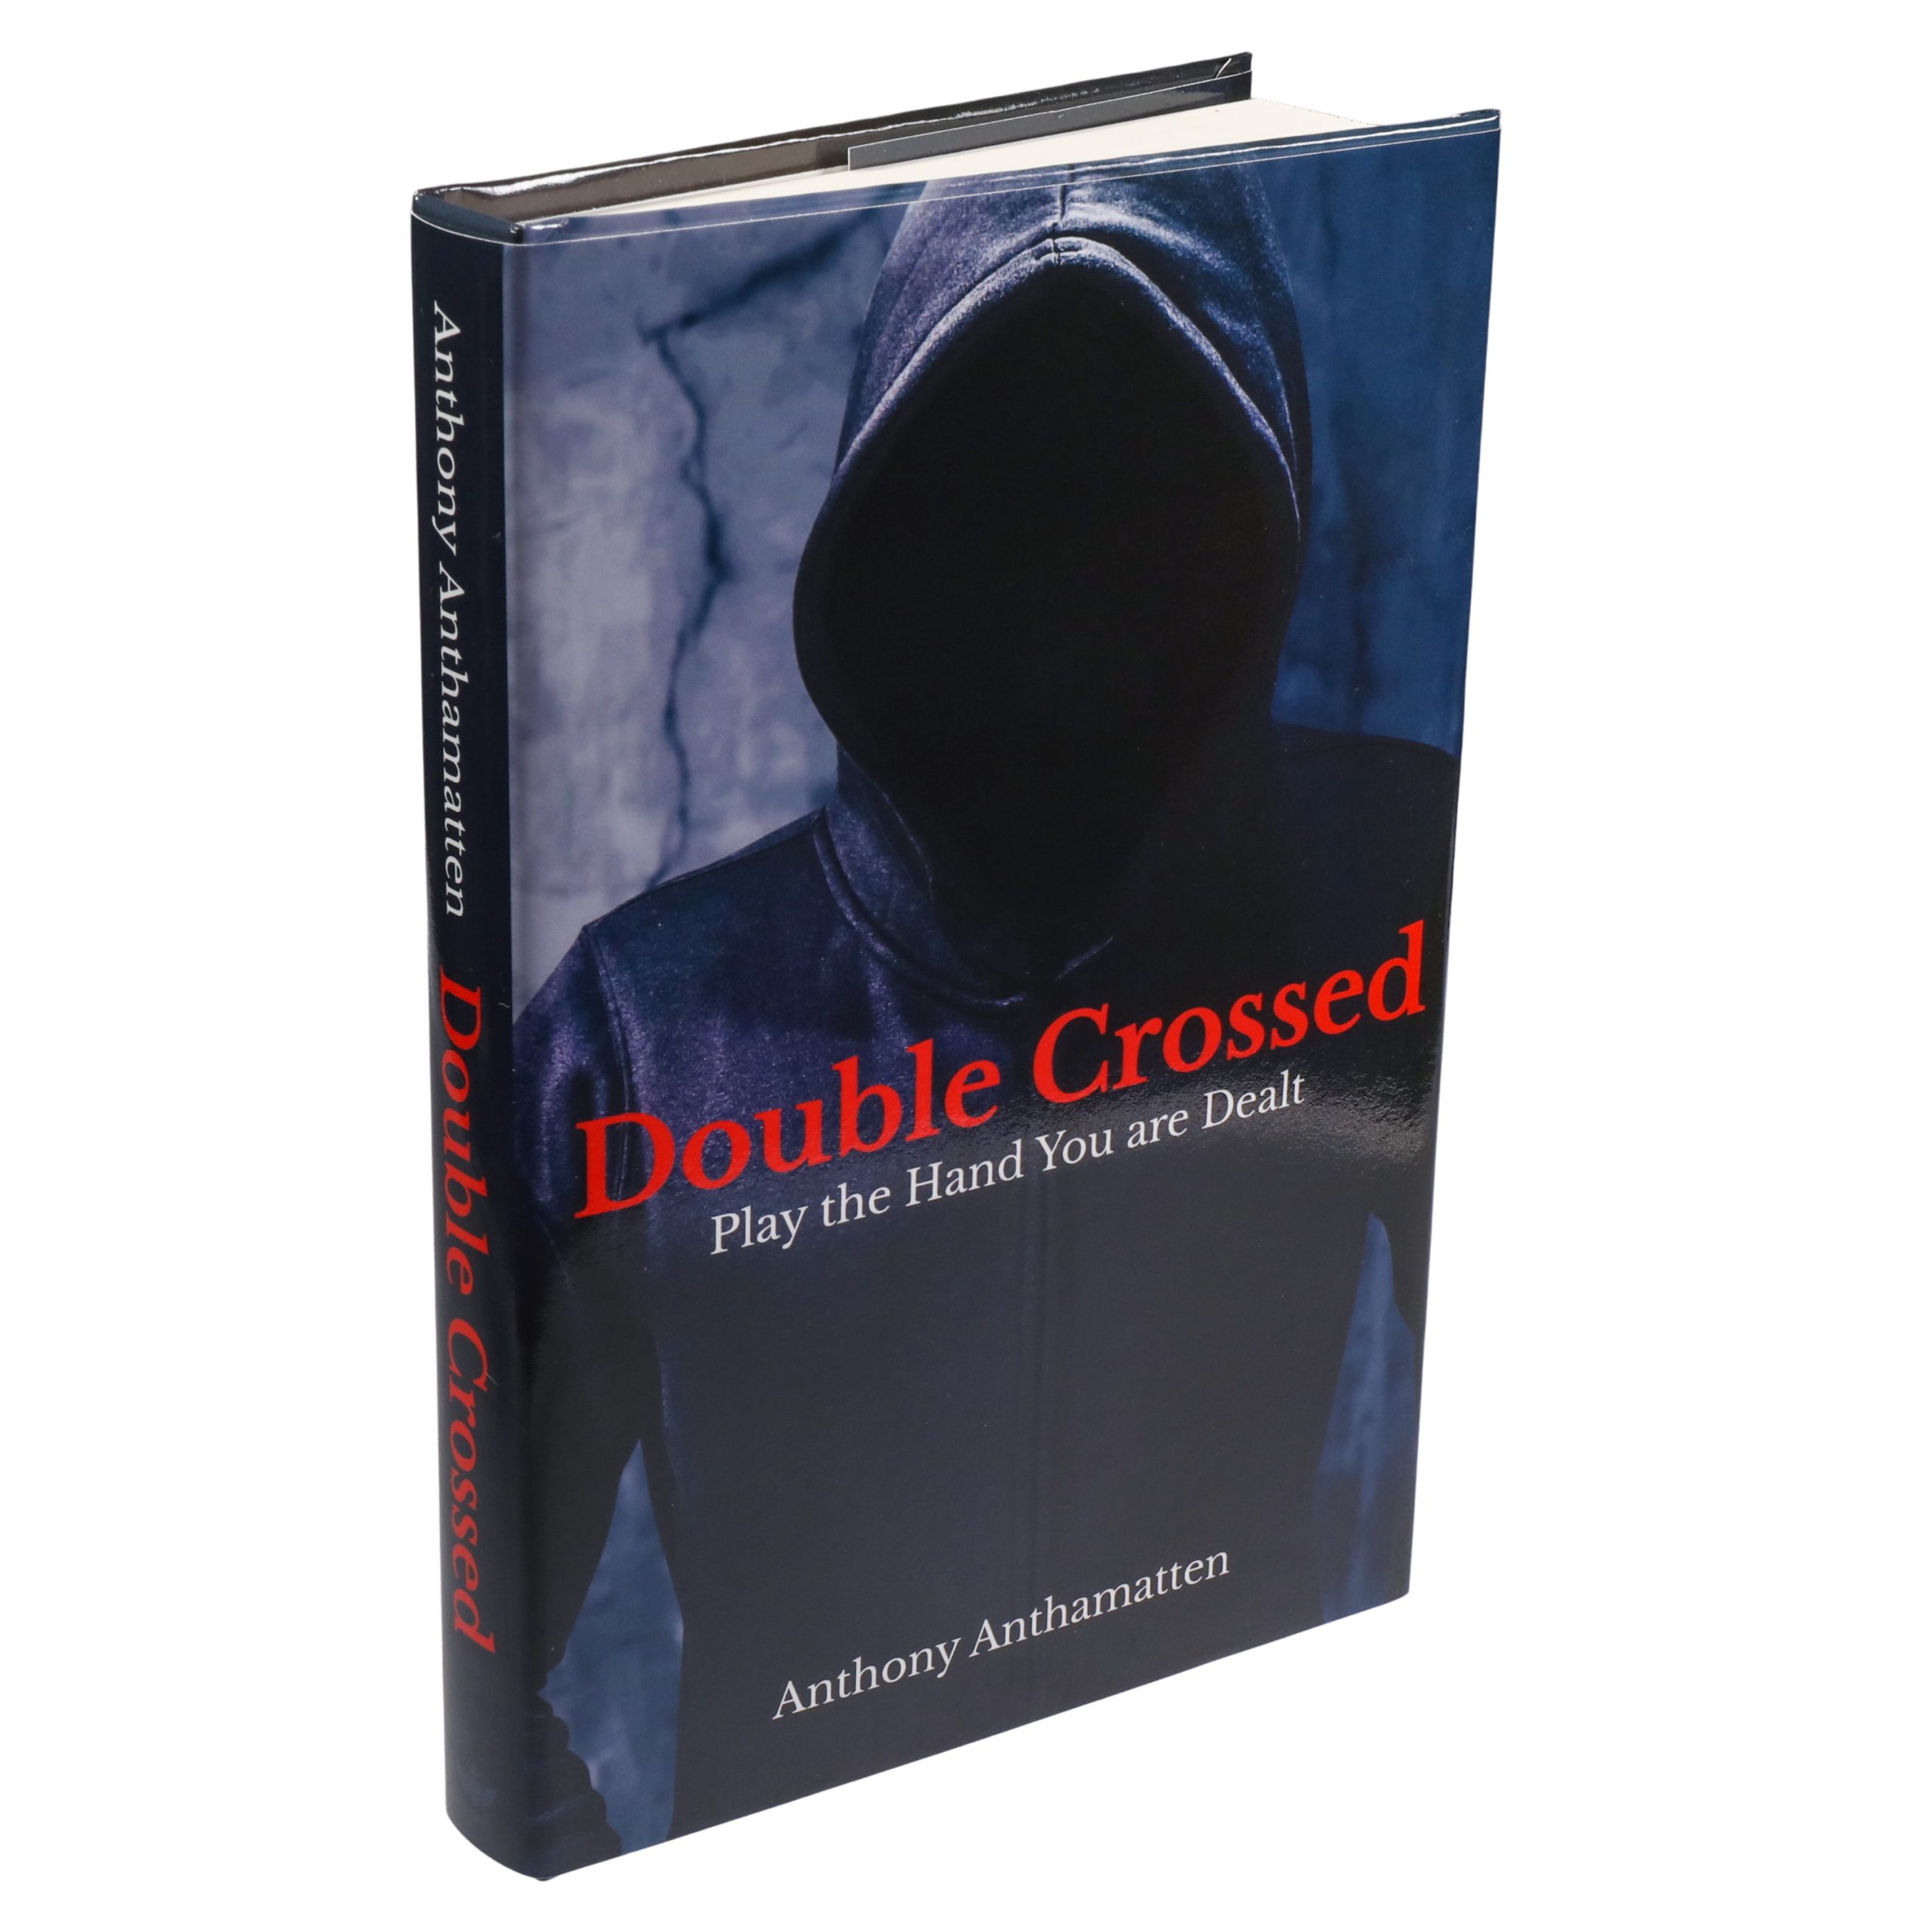 Double Crossed Hardcover